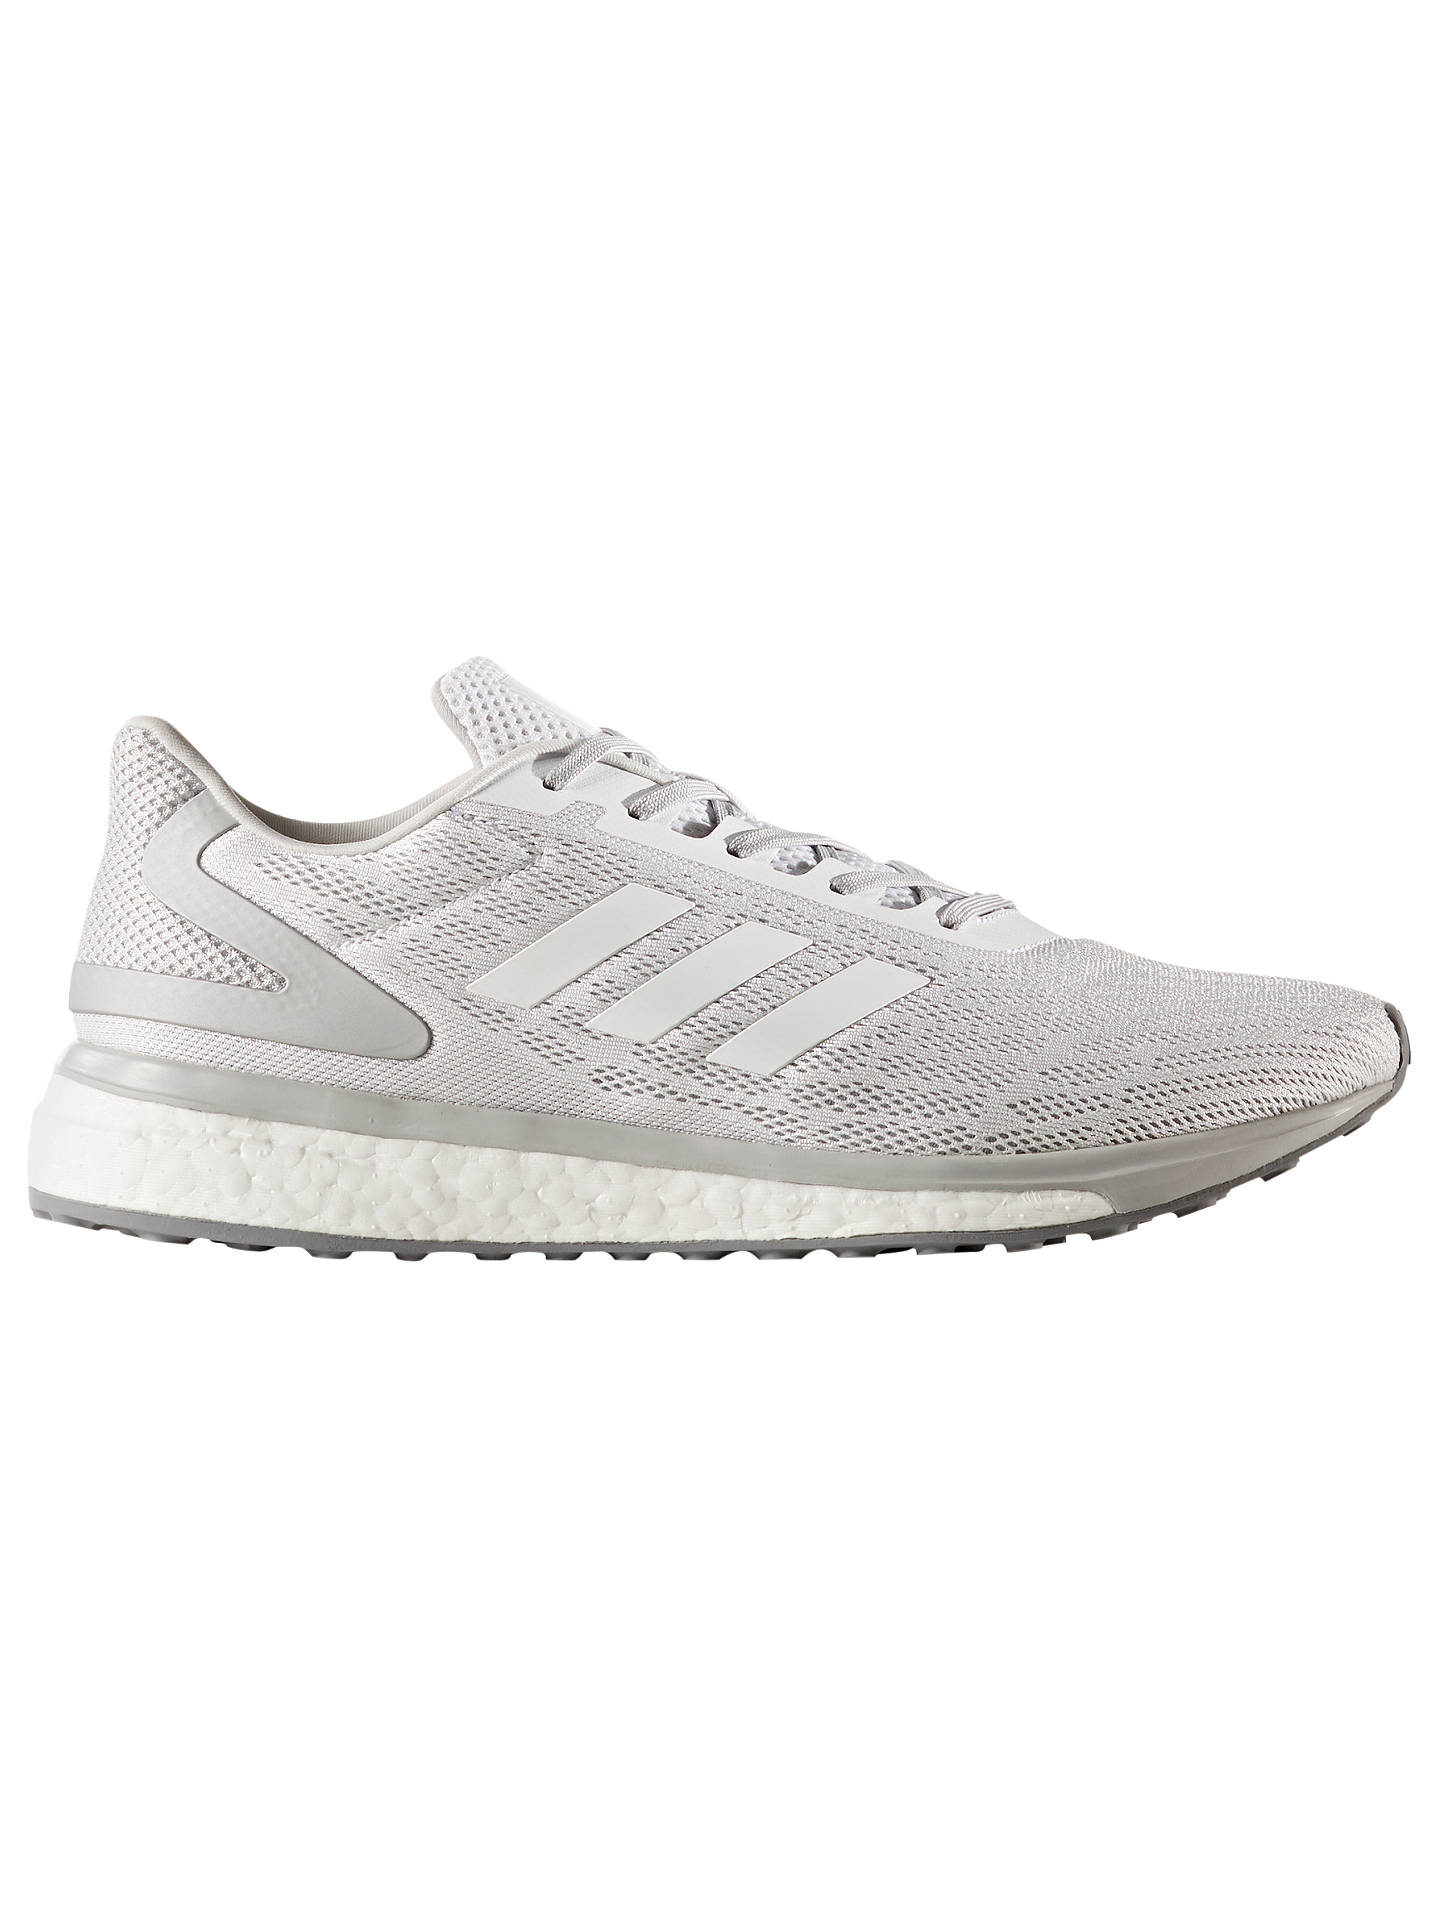 a2a4a3ab0 Buy adidas Response Lite Men s Running Shoes